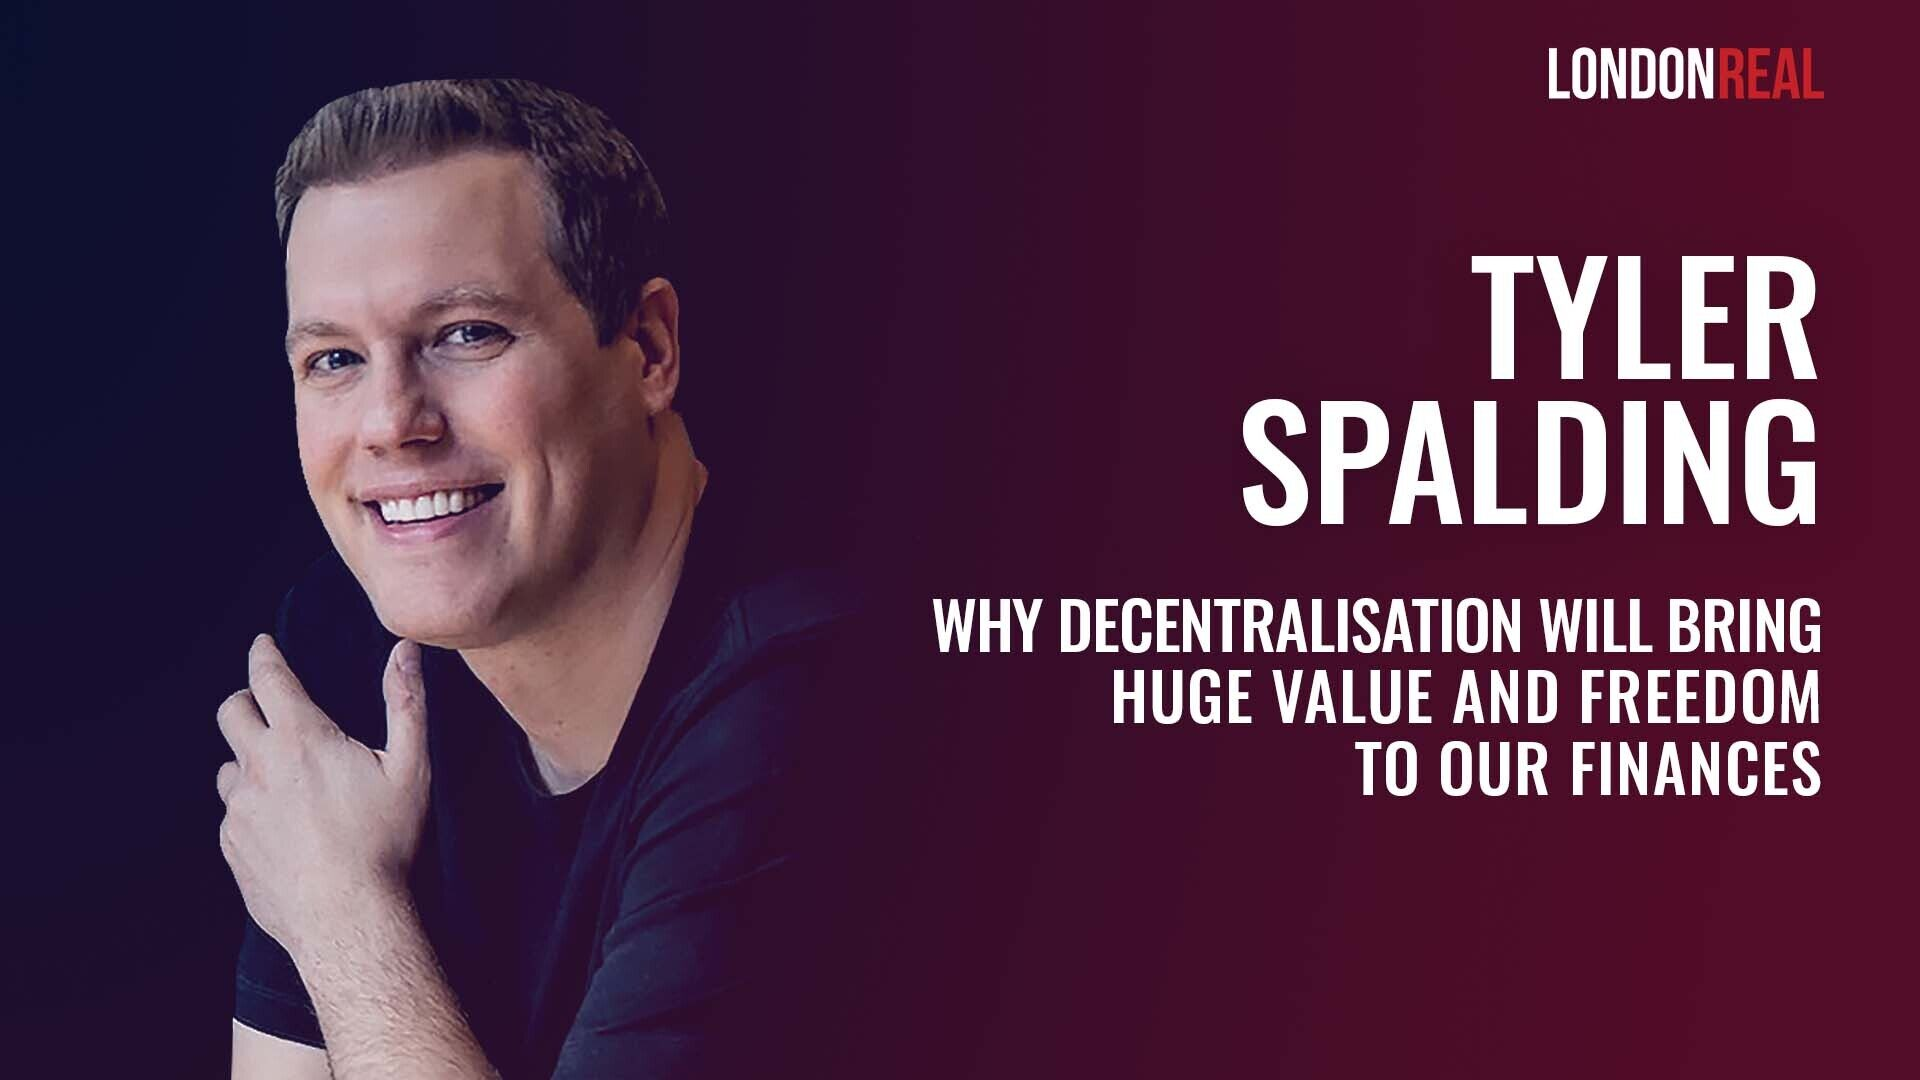 Tyler Spalding - Why Decentralisation Will Bring Huge Value And Freedom To Our Finances